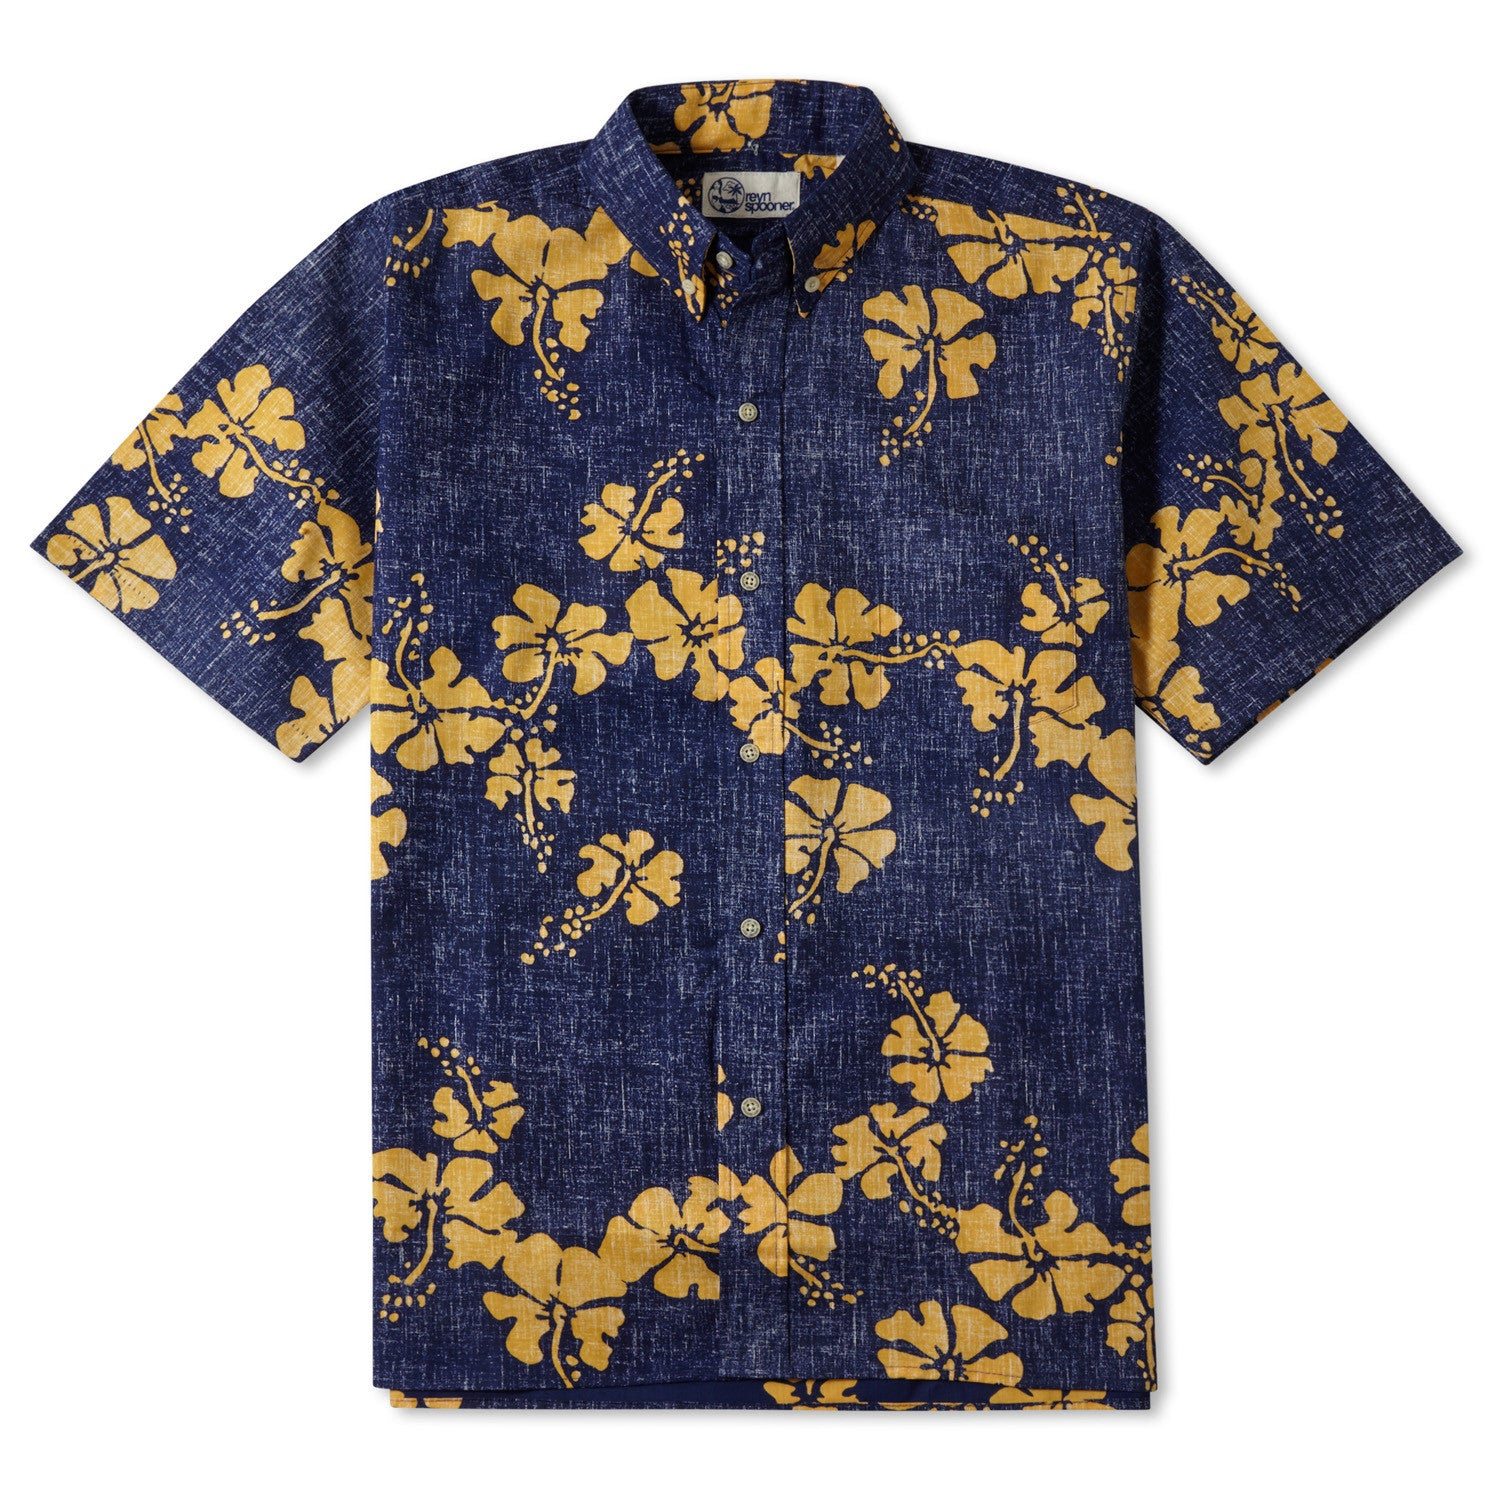 50Th State Flower / Classic Fit Button Front Shirt, Cotton/Polyester, For Men, 2XL, Navy Blue, From Reyn Spooner